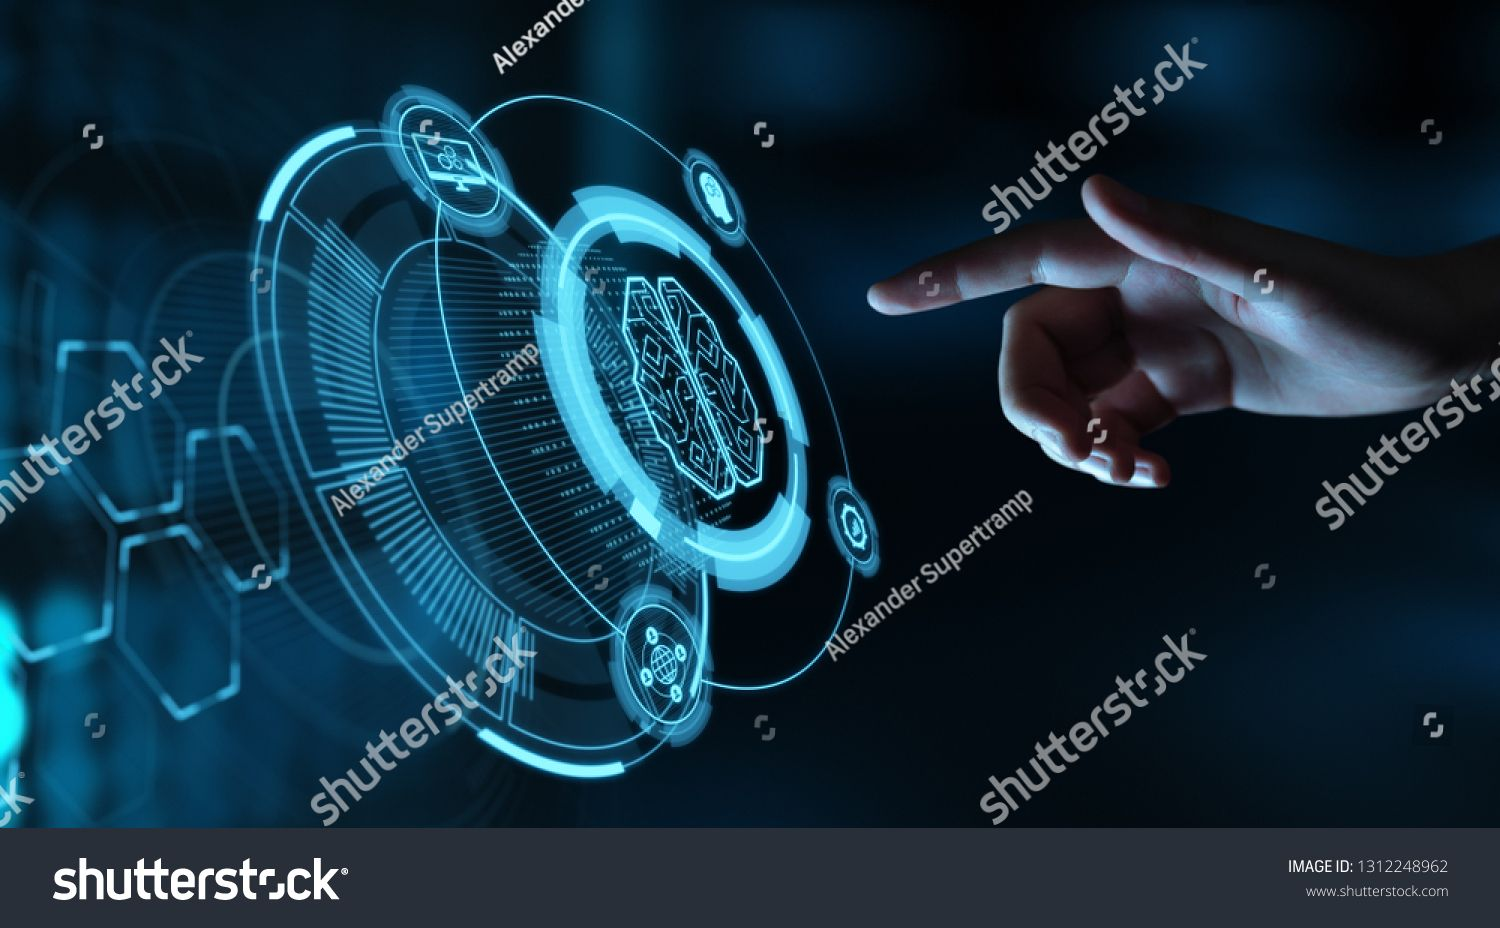 Artificial Intelligence Machine Learning Business Internet Technology Concept Ad Spo In 2020 Business Stock Photos Business Cards Design Diy Business Stock Images